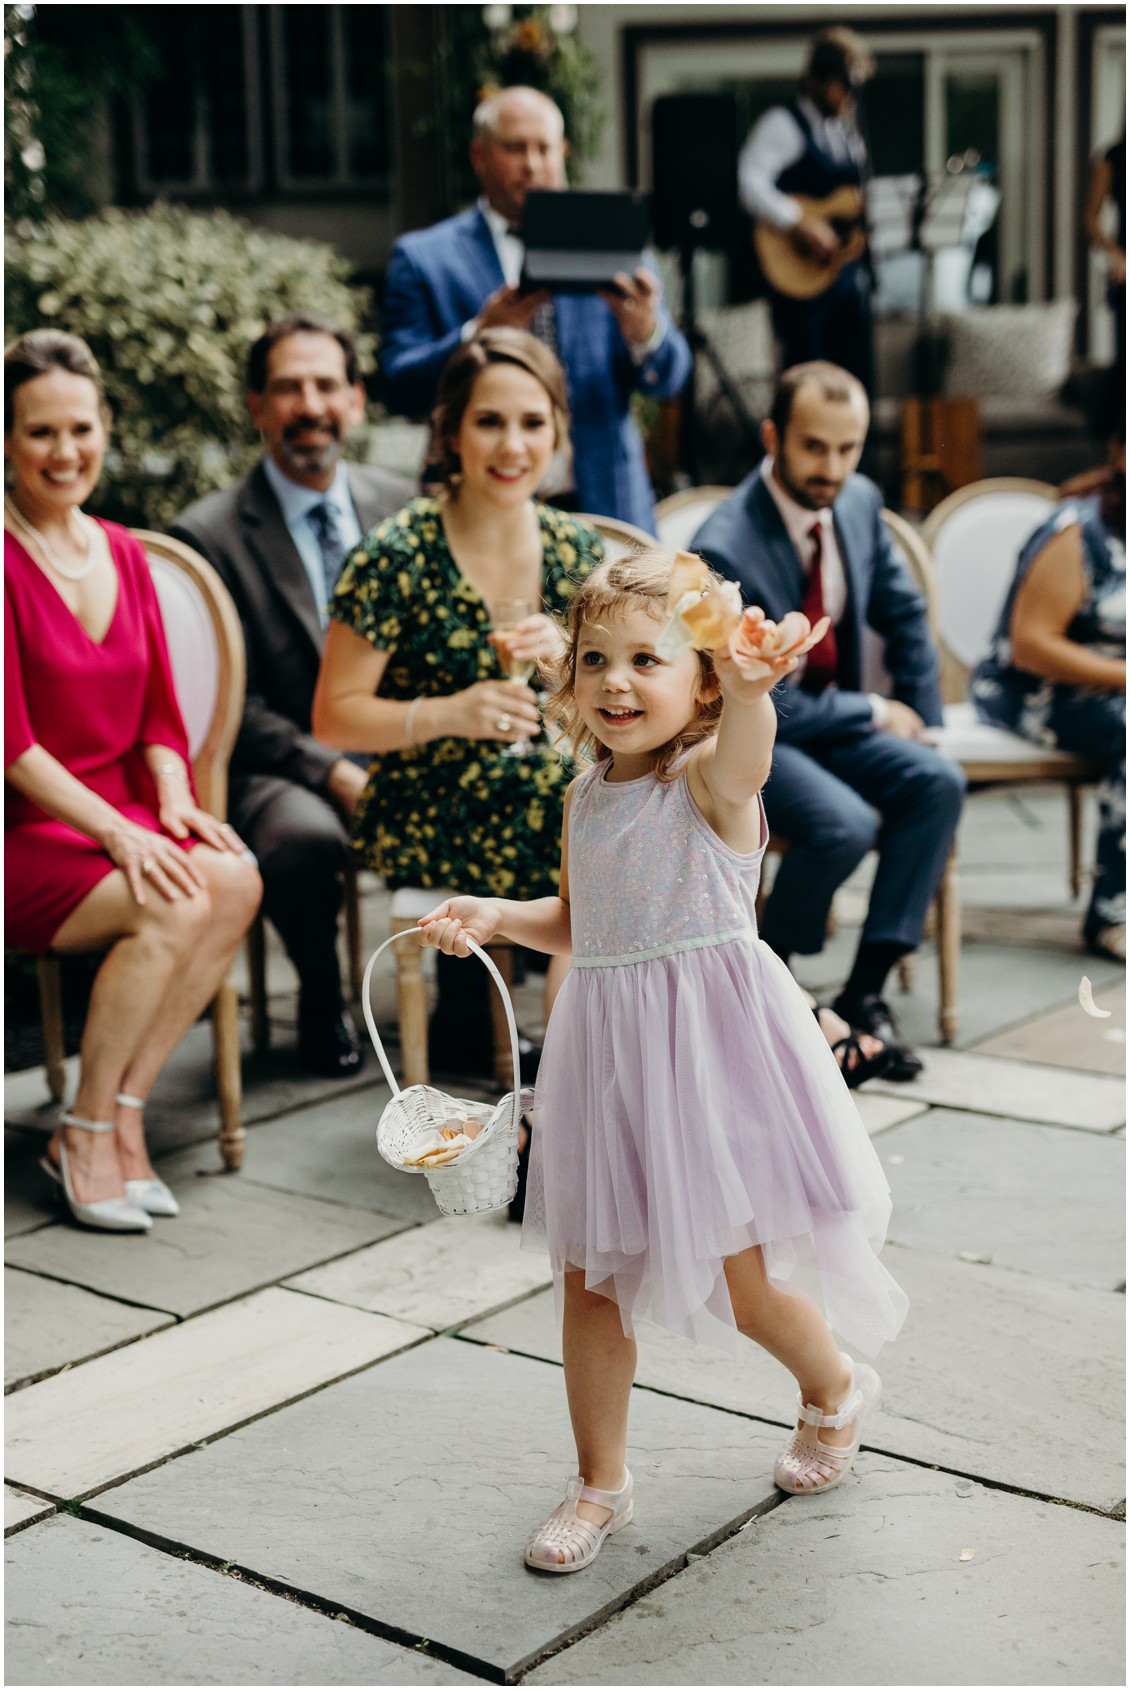 Flower girl throwing rose petals | My Eastern Shore Wedding | Sherwood Florist